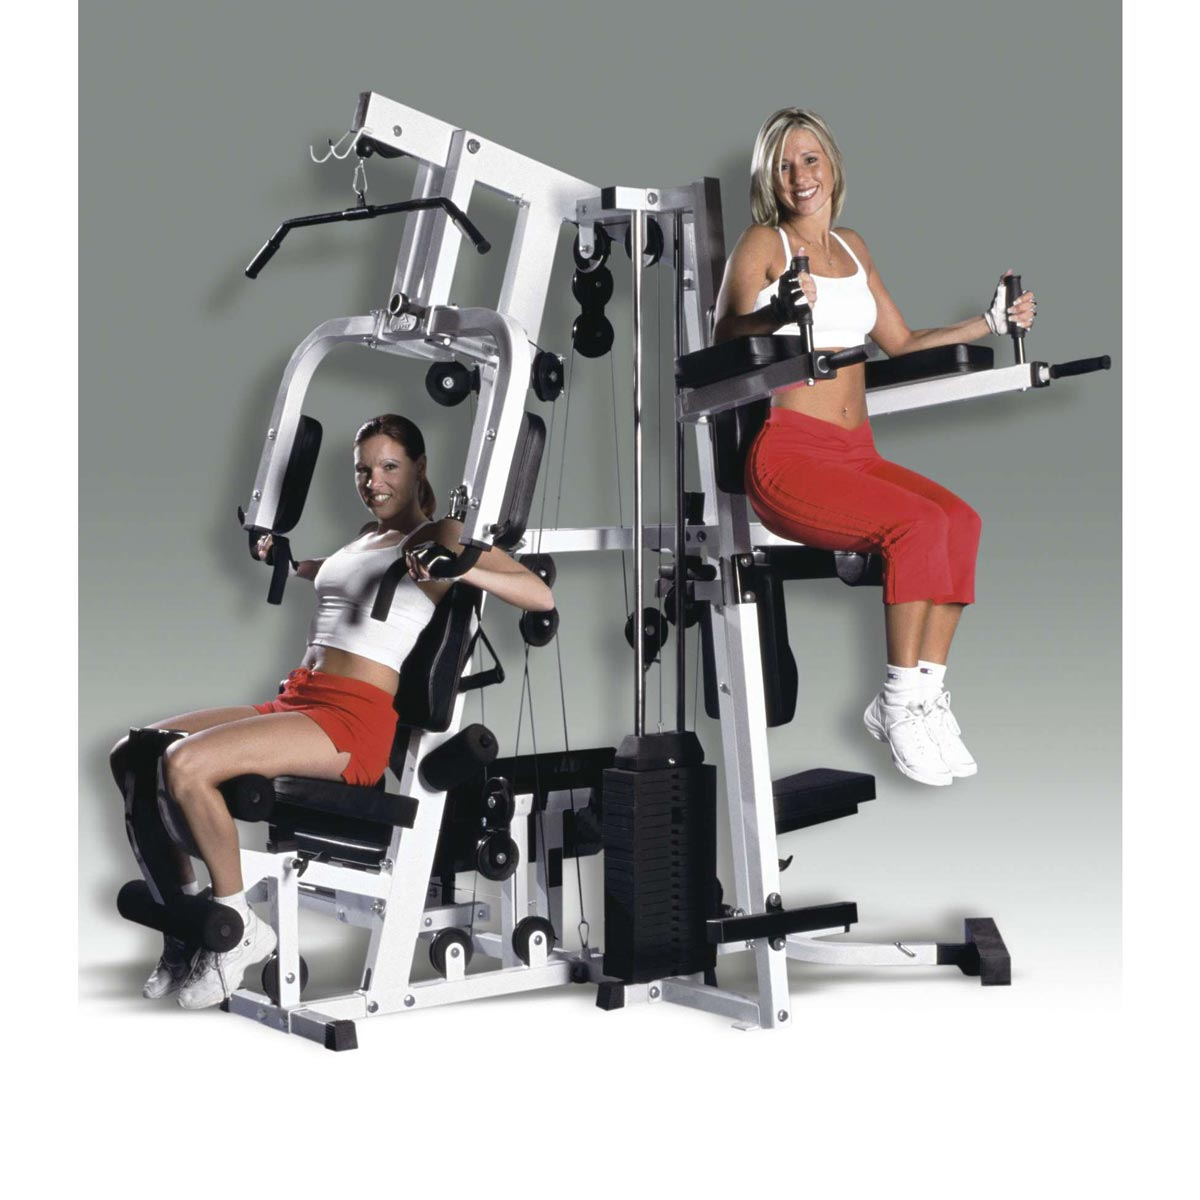 Different exercise machines at the gym good